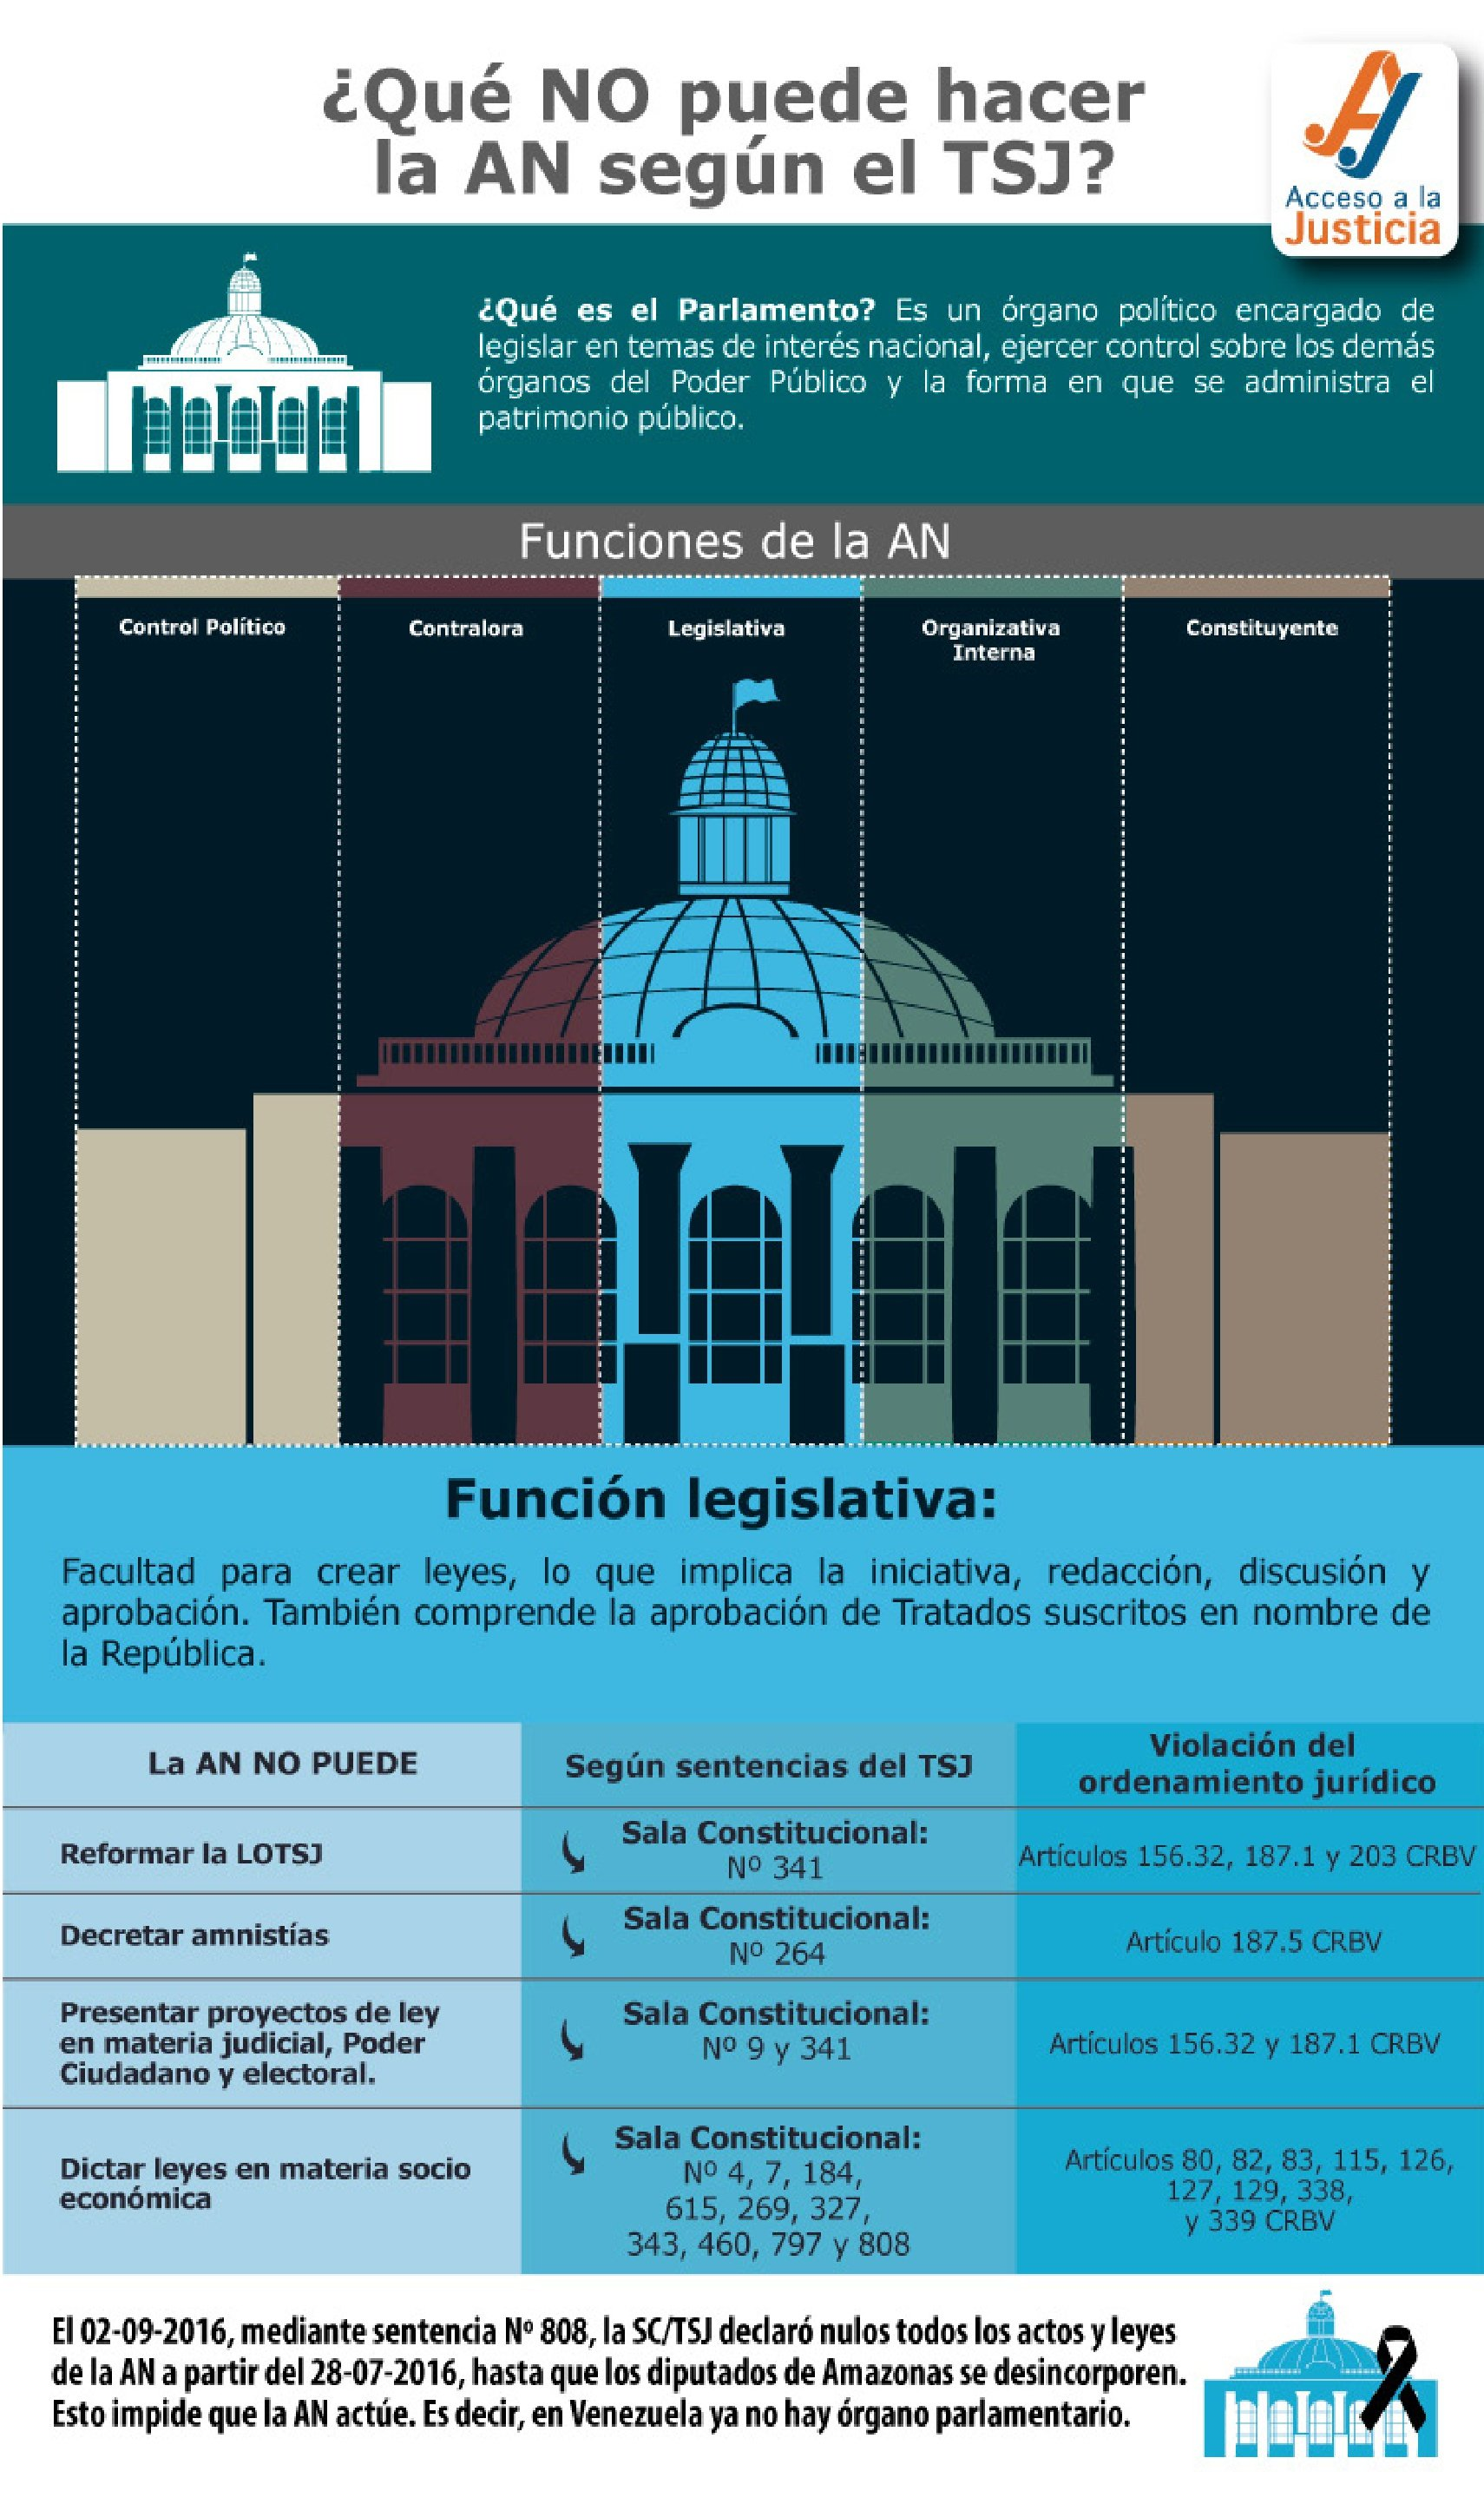 TSJ vs. función legislativa de la AN